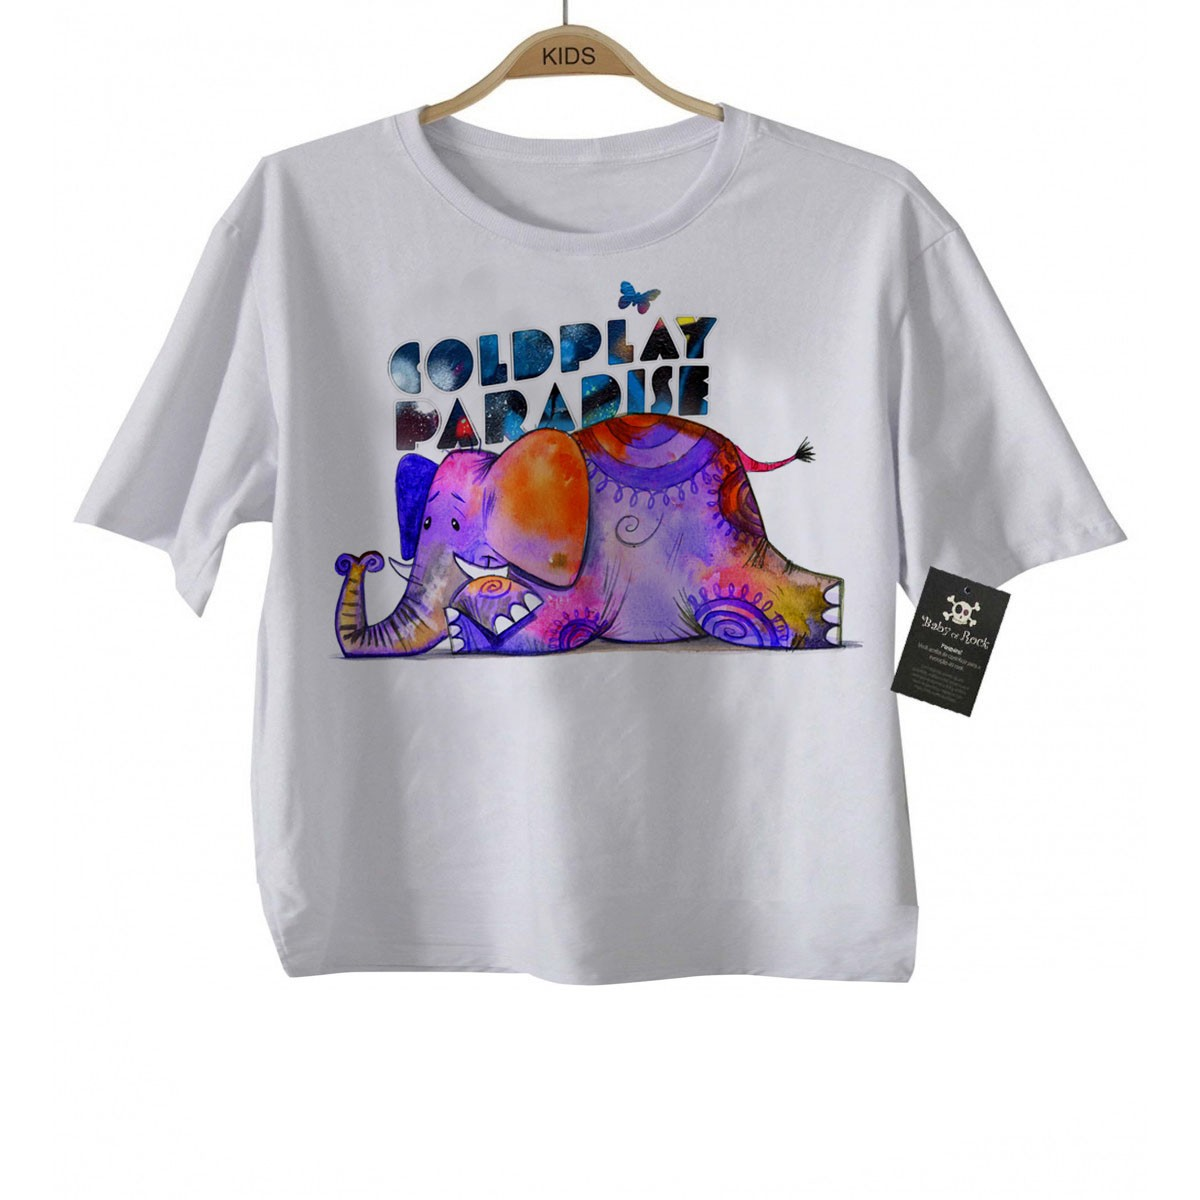 Camiseta Infantil de Rock  Coldplay - White  - Baby Monster S/A